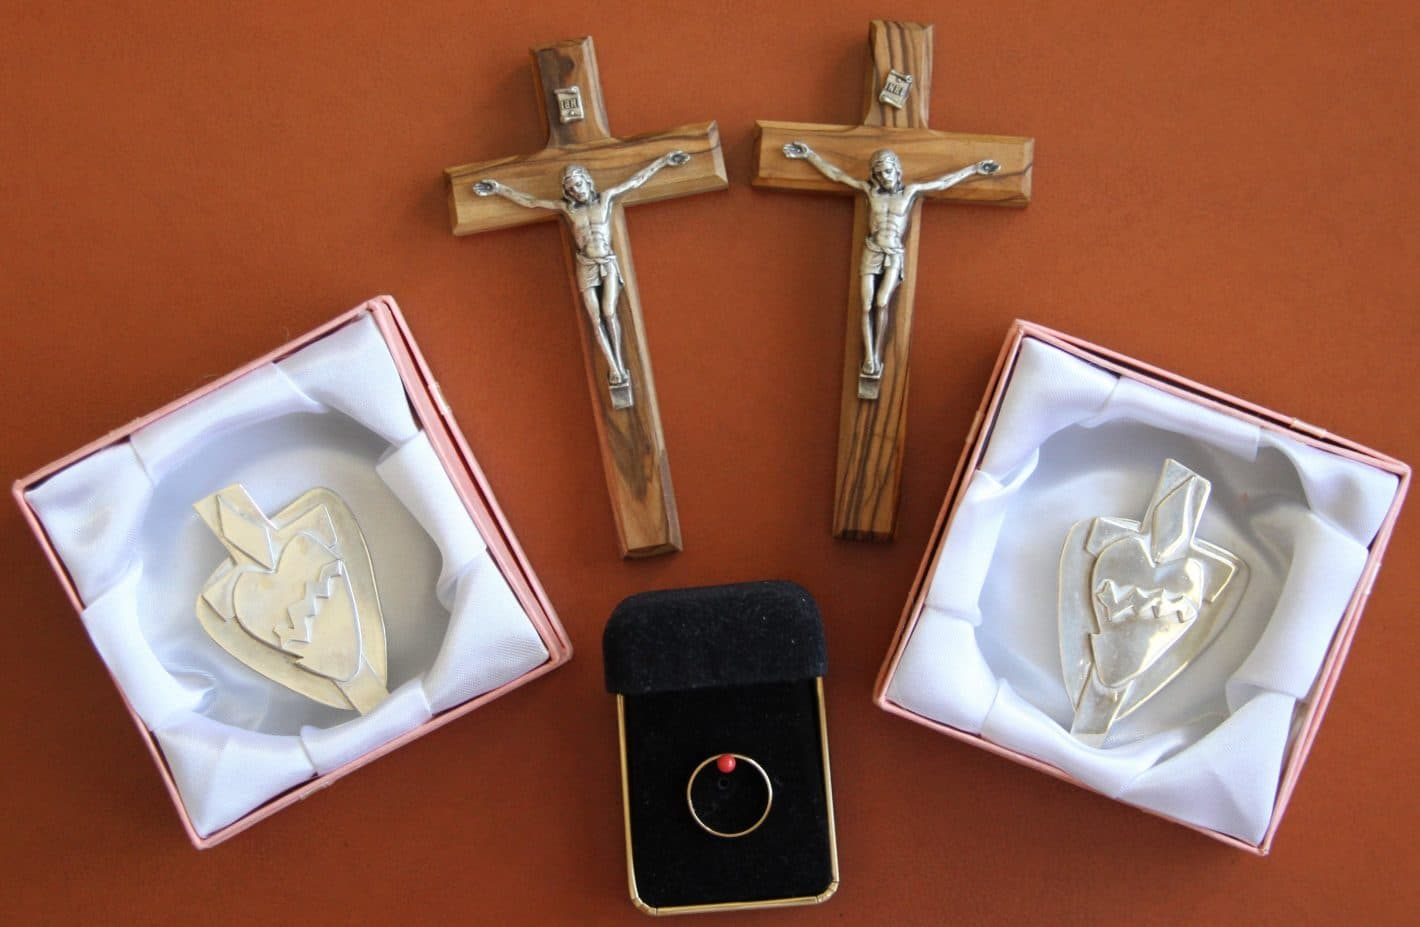 Gold Ring for Final Profession; Profession Crucifixes and Silver Sacred Heart Badges received at First Profession